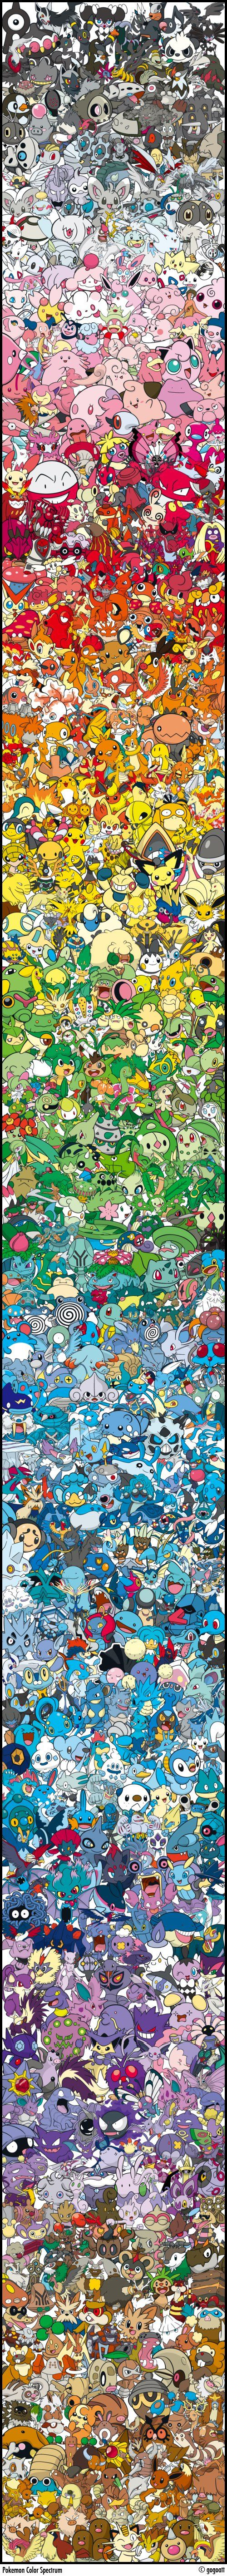 Every Single Pokemon, Arranged By Color. For the Pokemon lovers with OCD. Phew that's a lot of Pokemons!